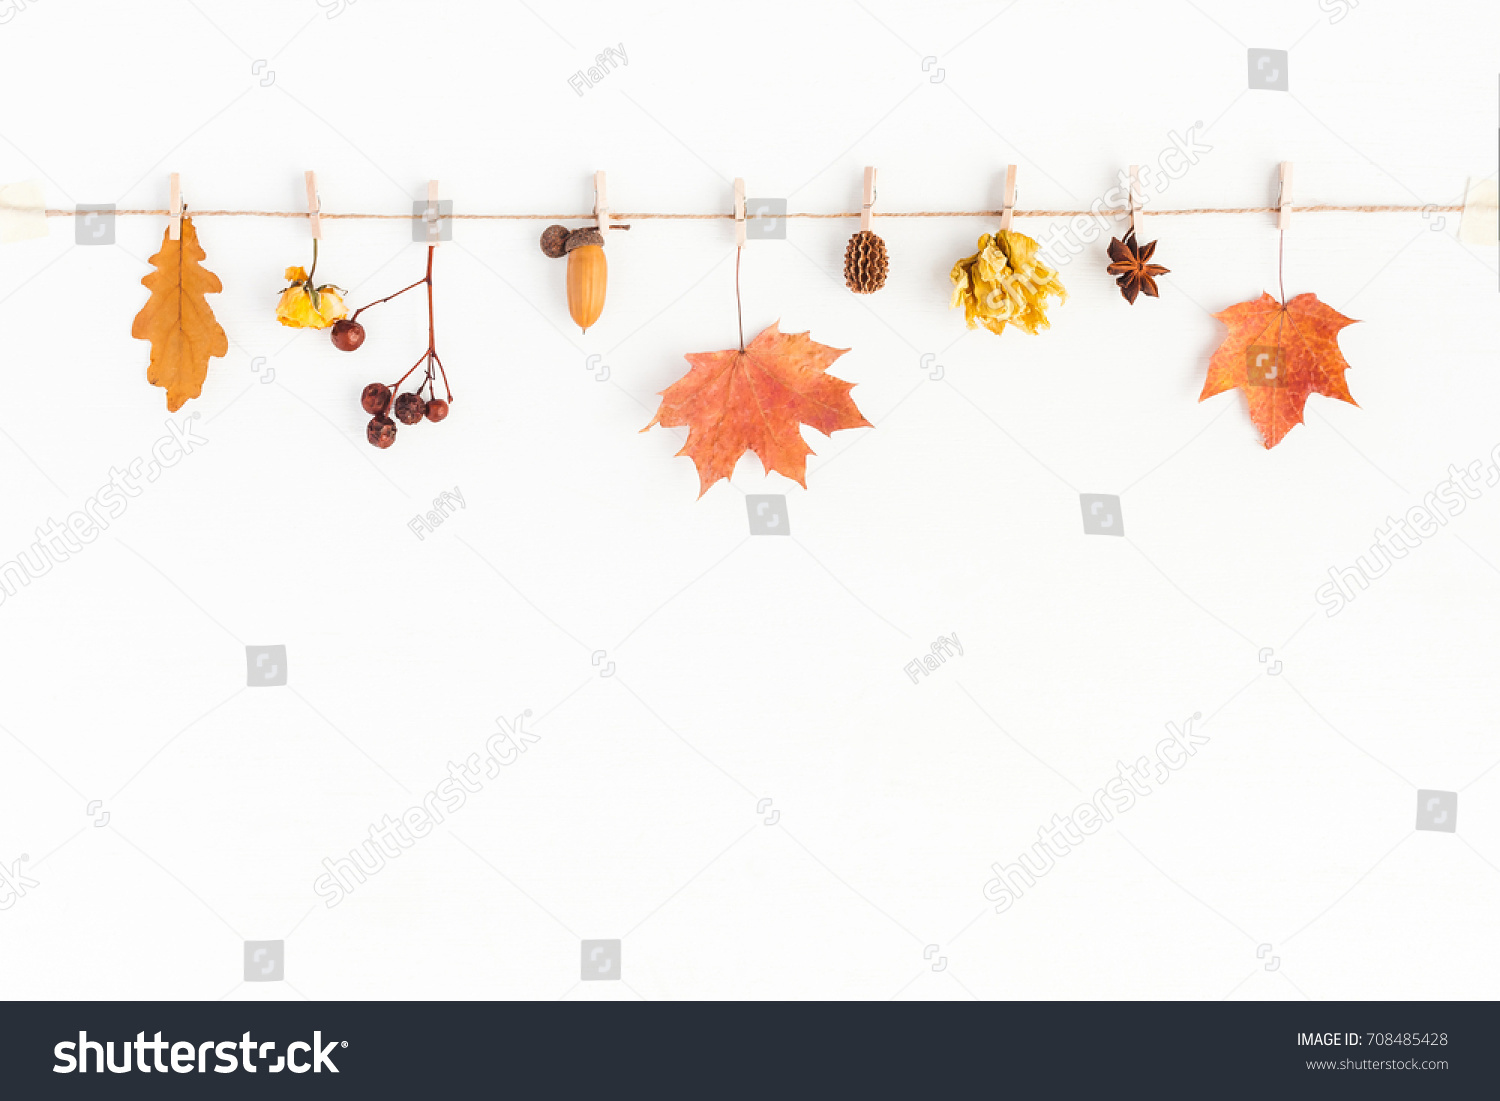 Autumn composition. Autumn flowers and leaves, acorn, pine cone, anise star. Flat lay, top view, copy space #708485428